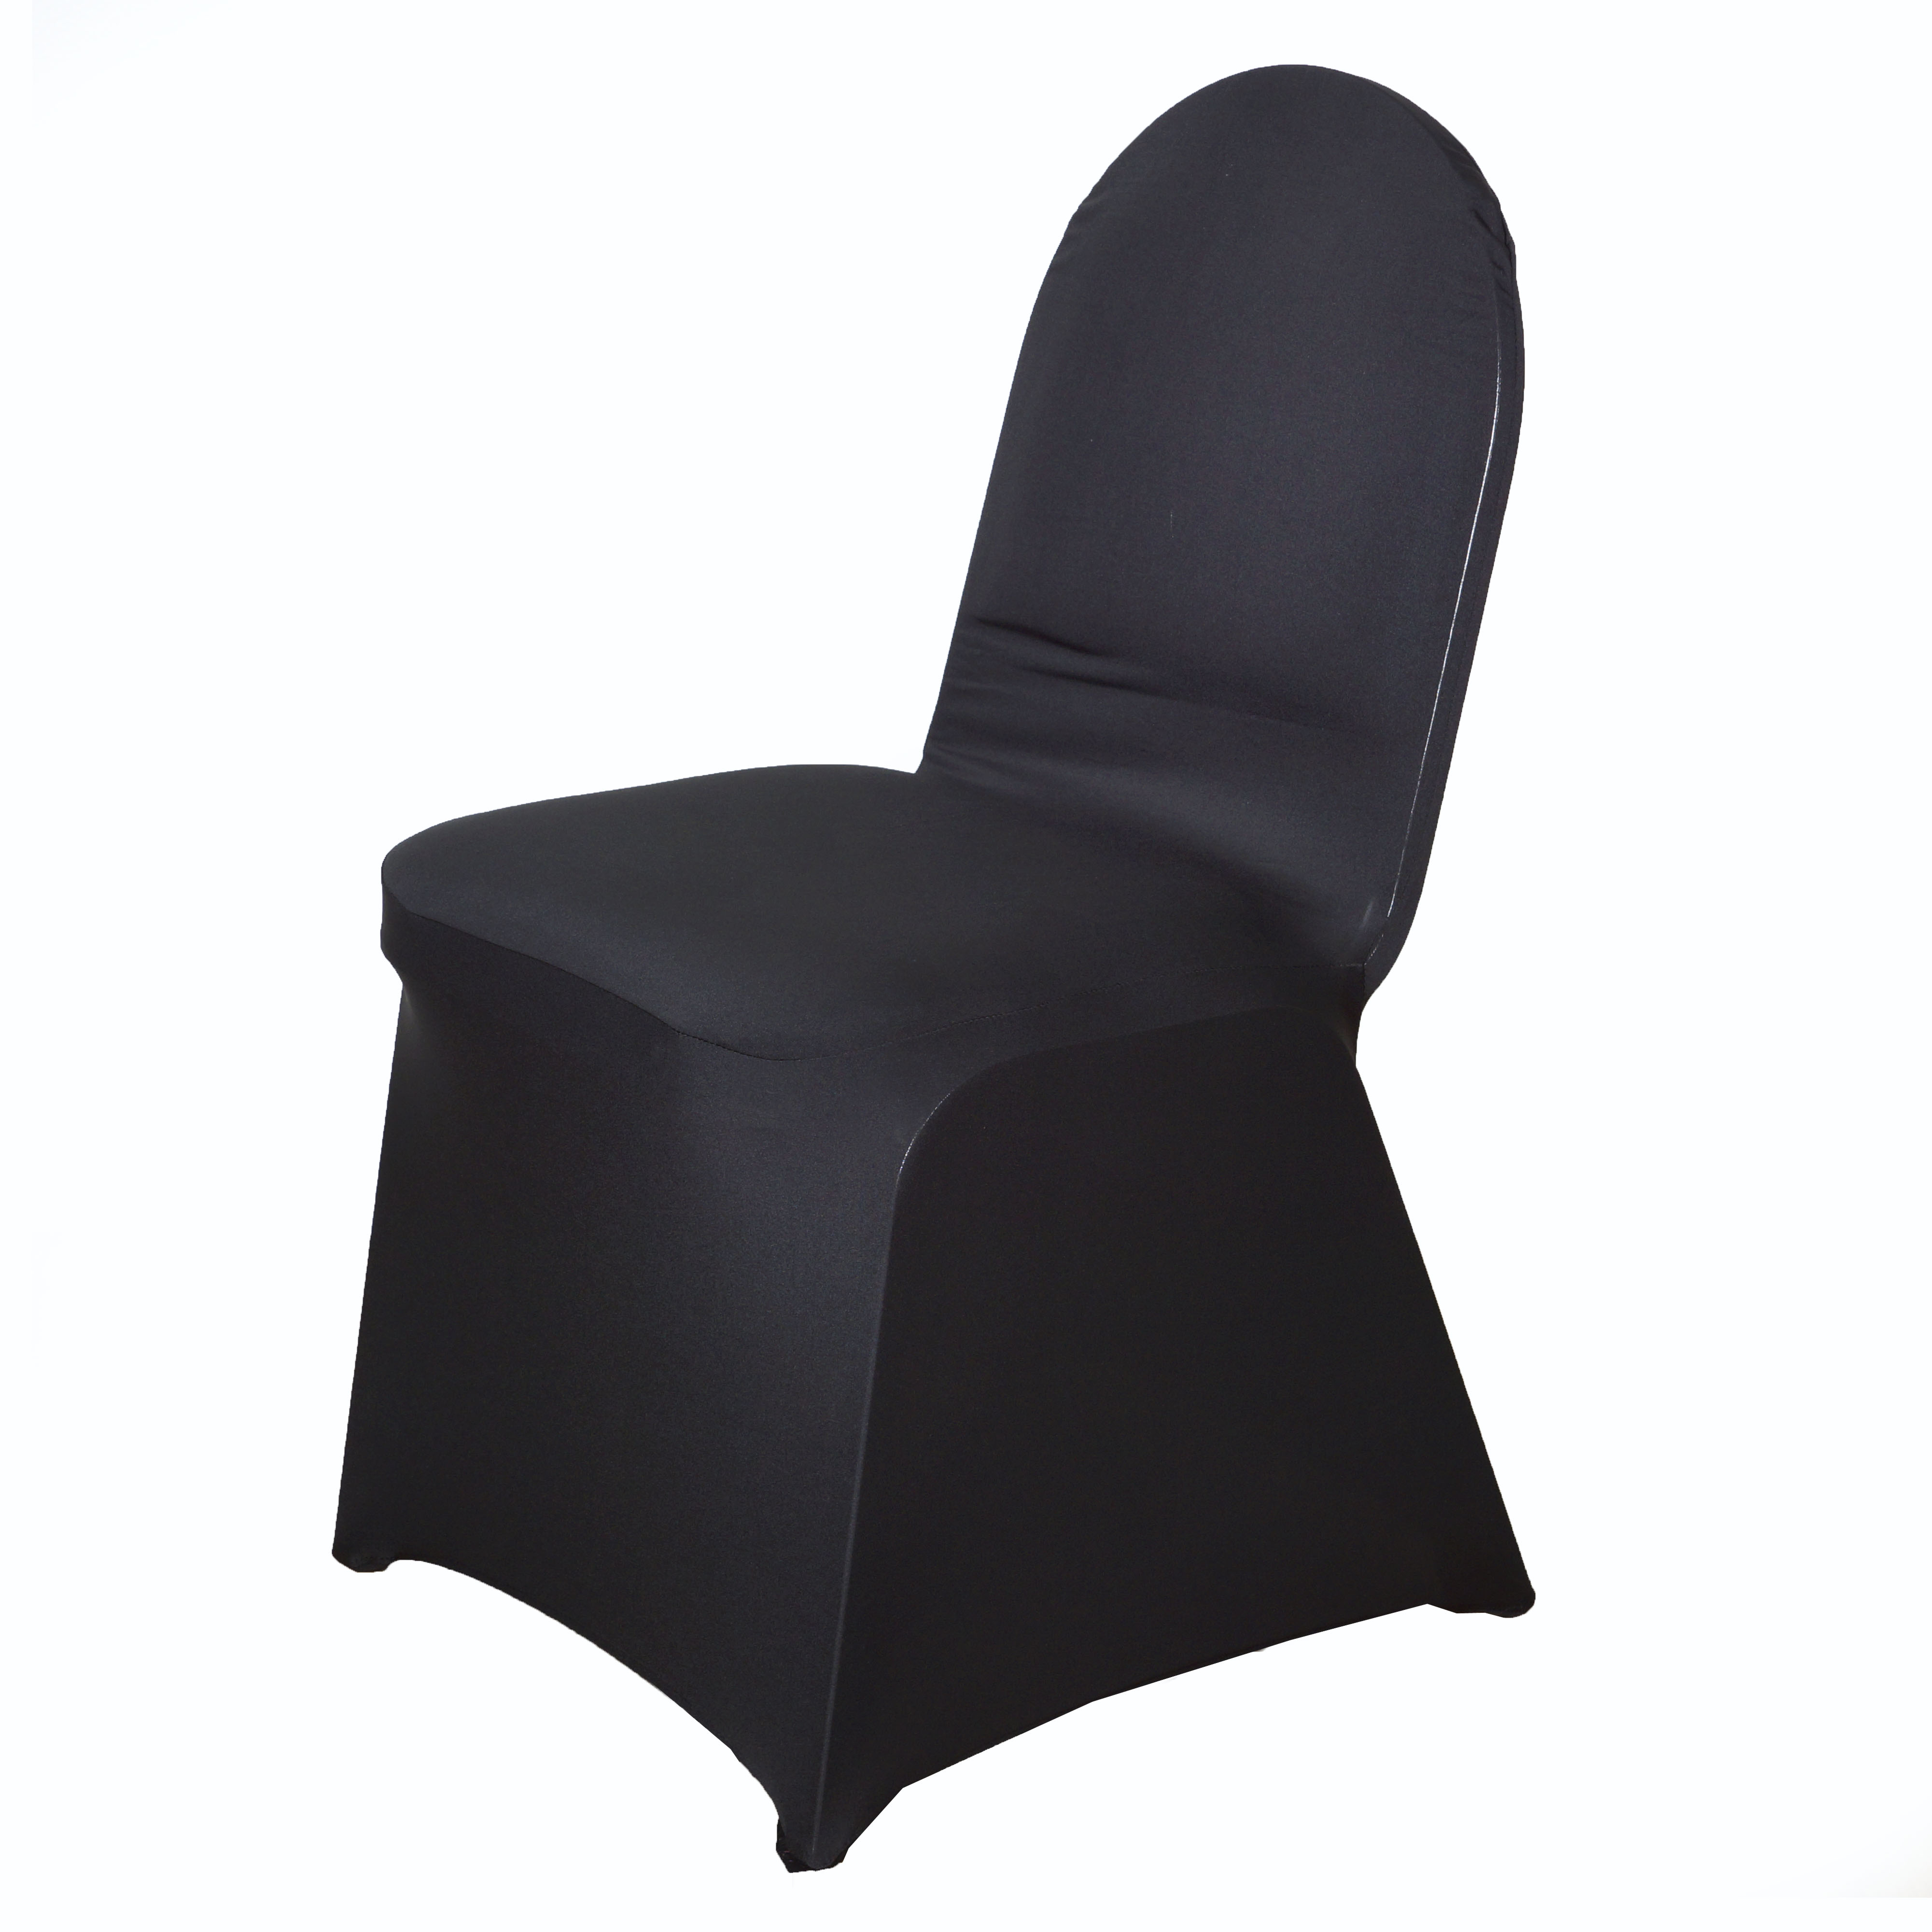 100 pcs SPANDEX Stretchable High Quality CHAIR COVERS Wholesale